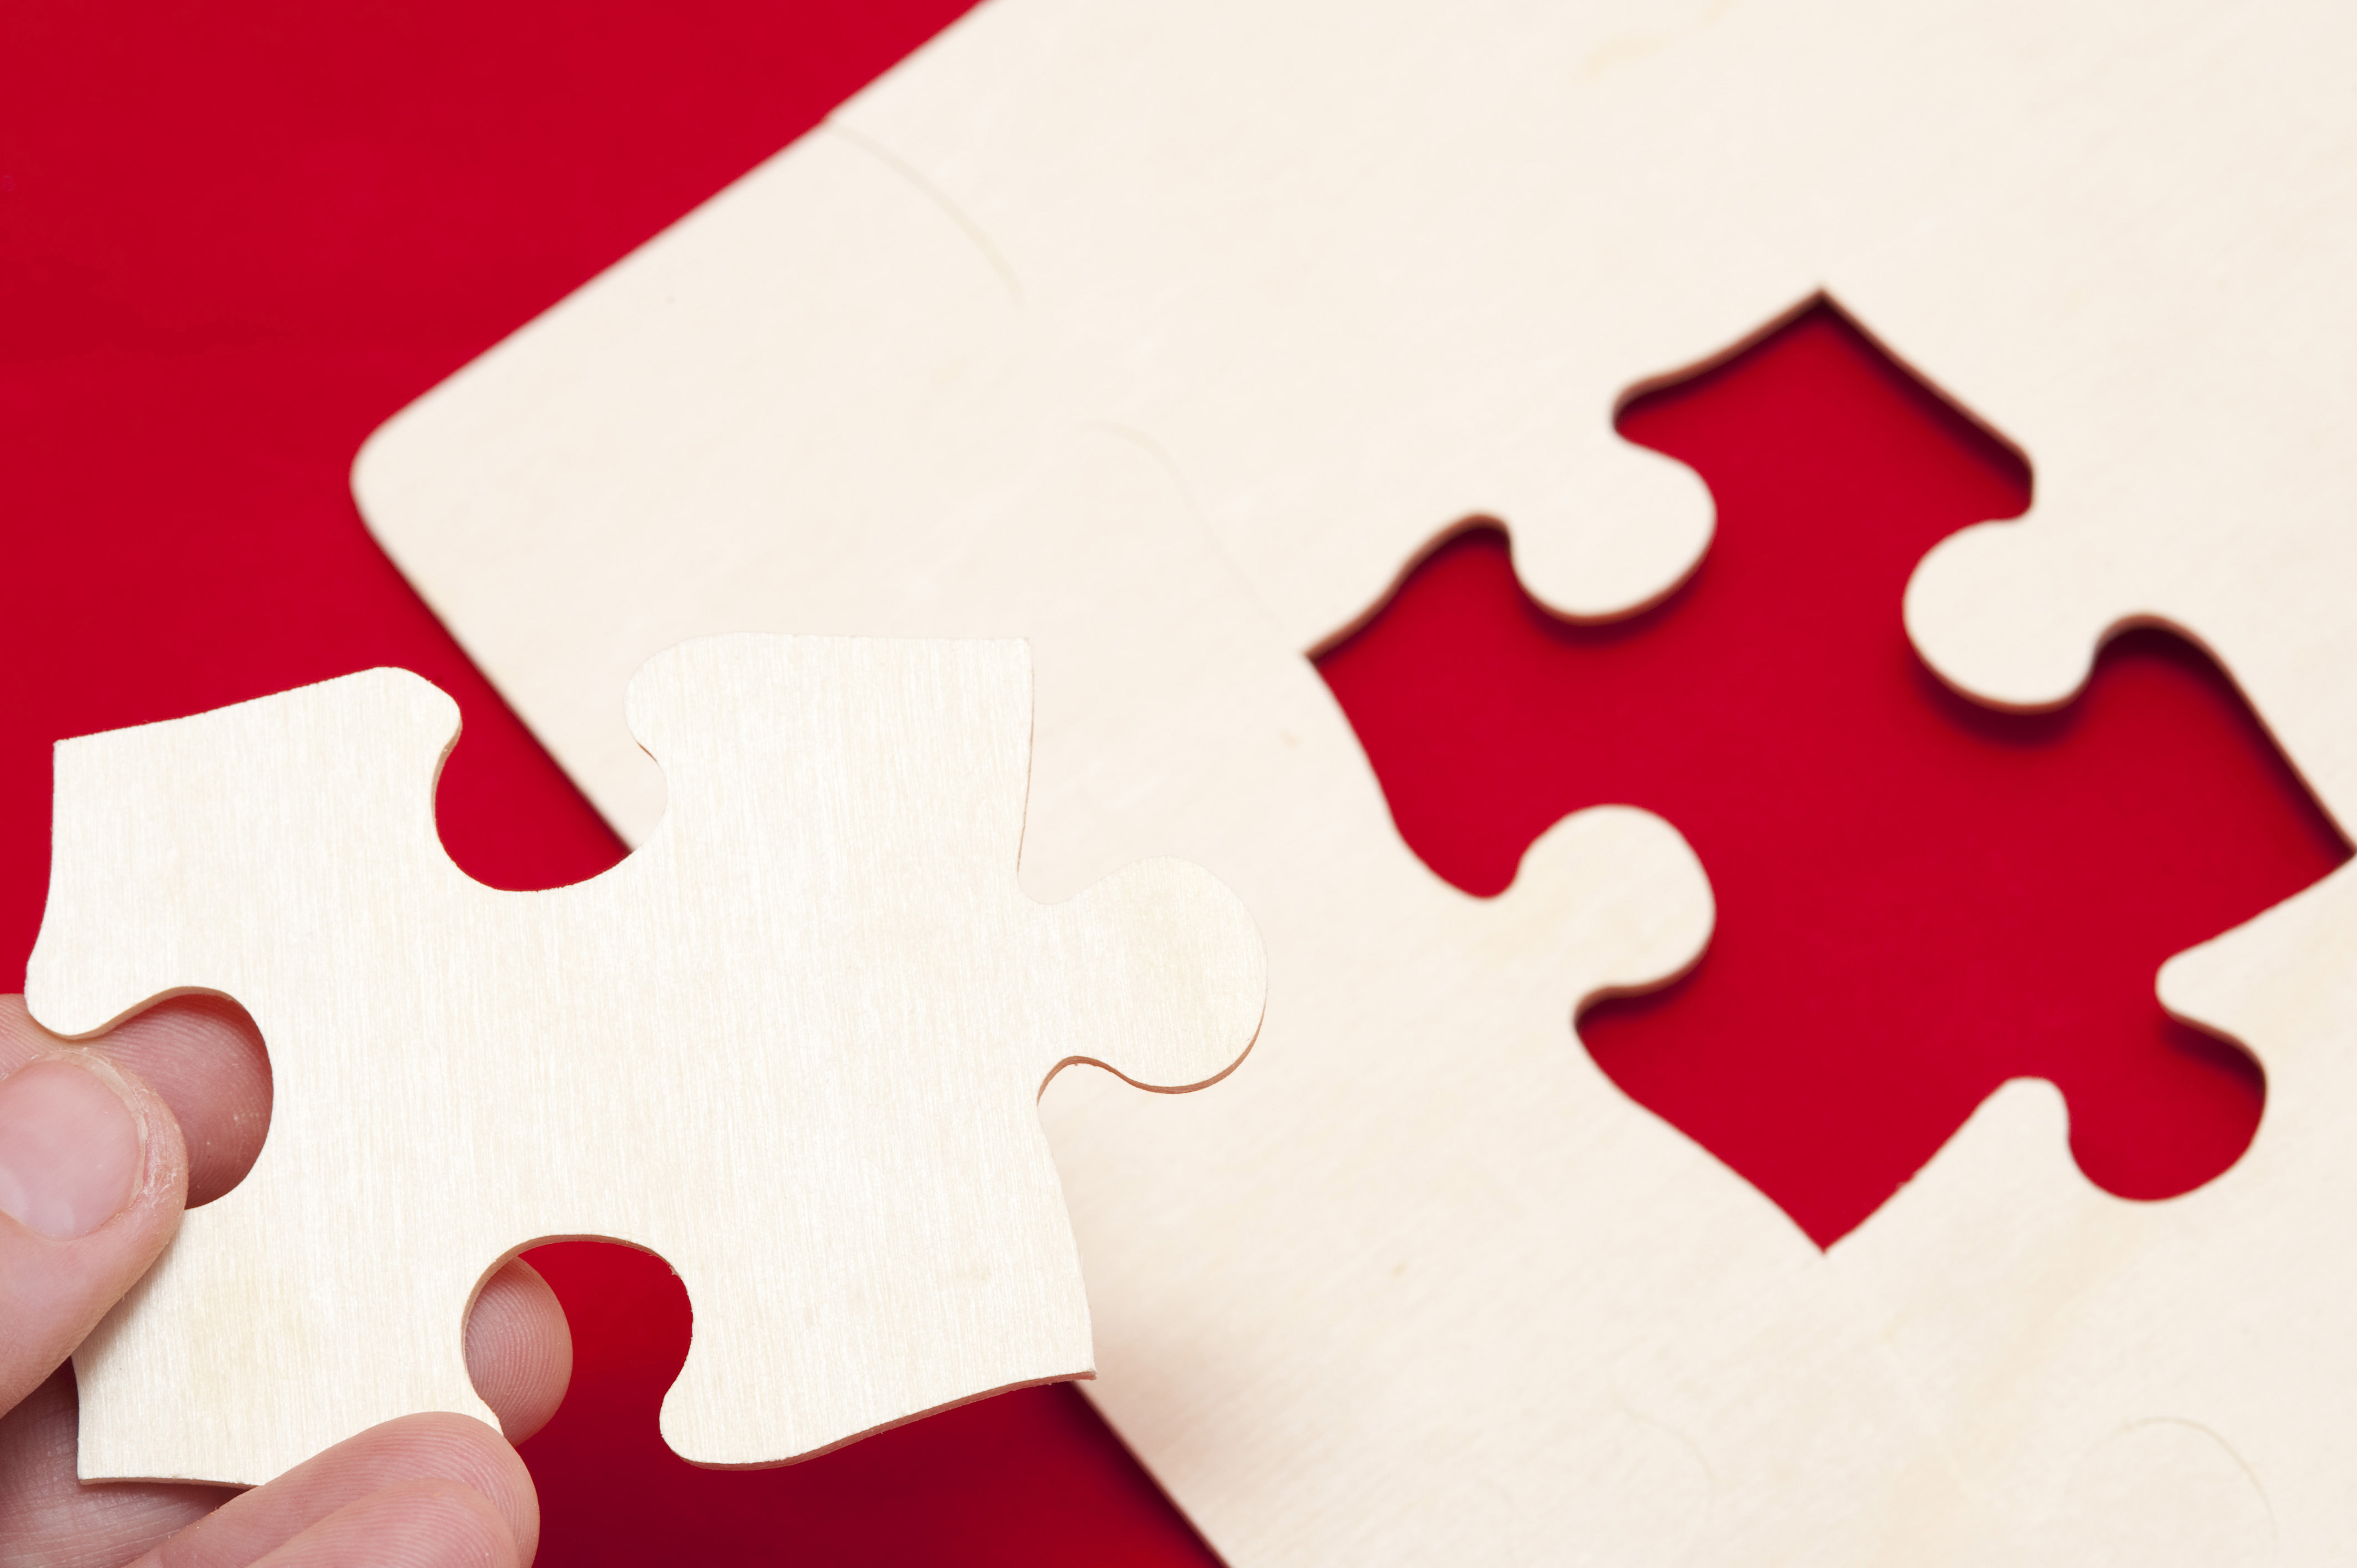 Conceptual Man Holding White Puzzle Piece to Complete the Puzzle on the Red Table